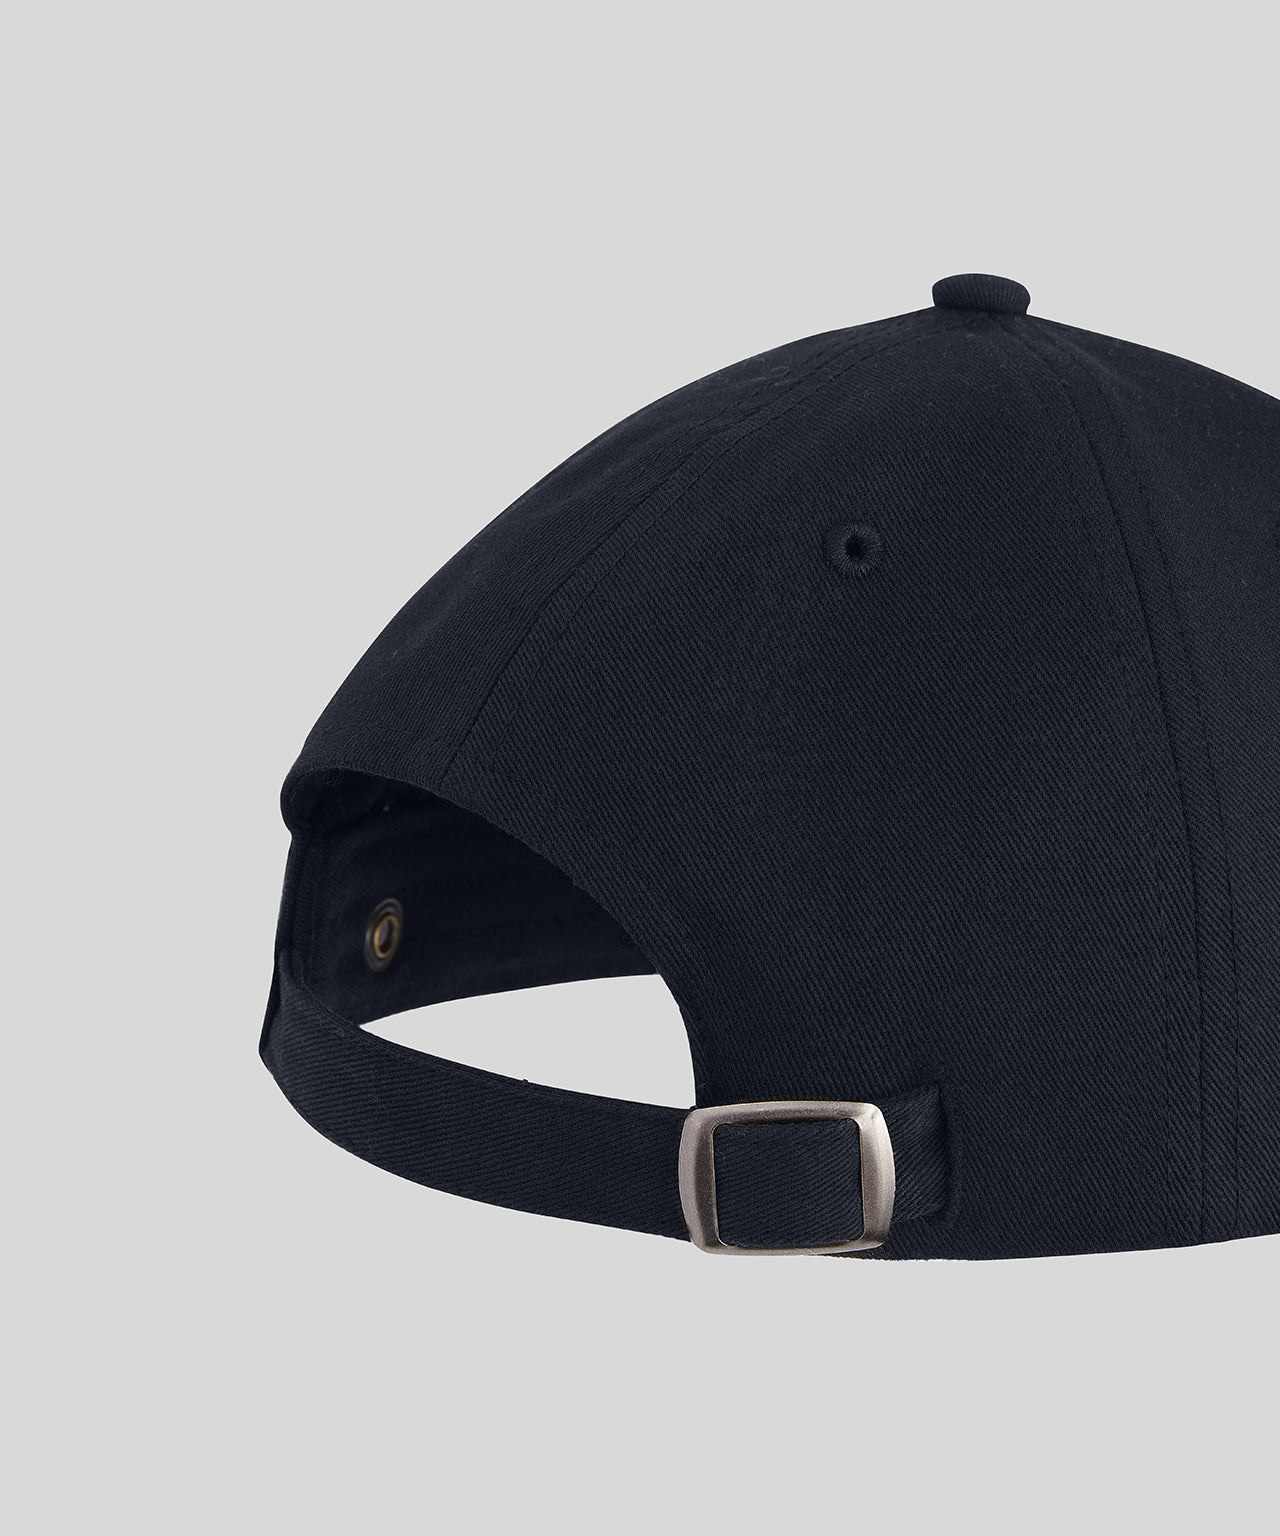 Coach Cap VELO LOVE - navy